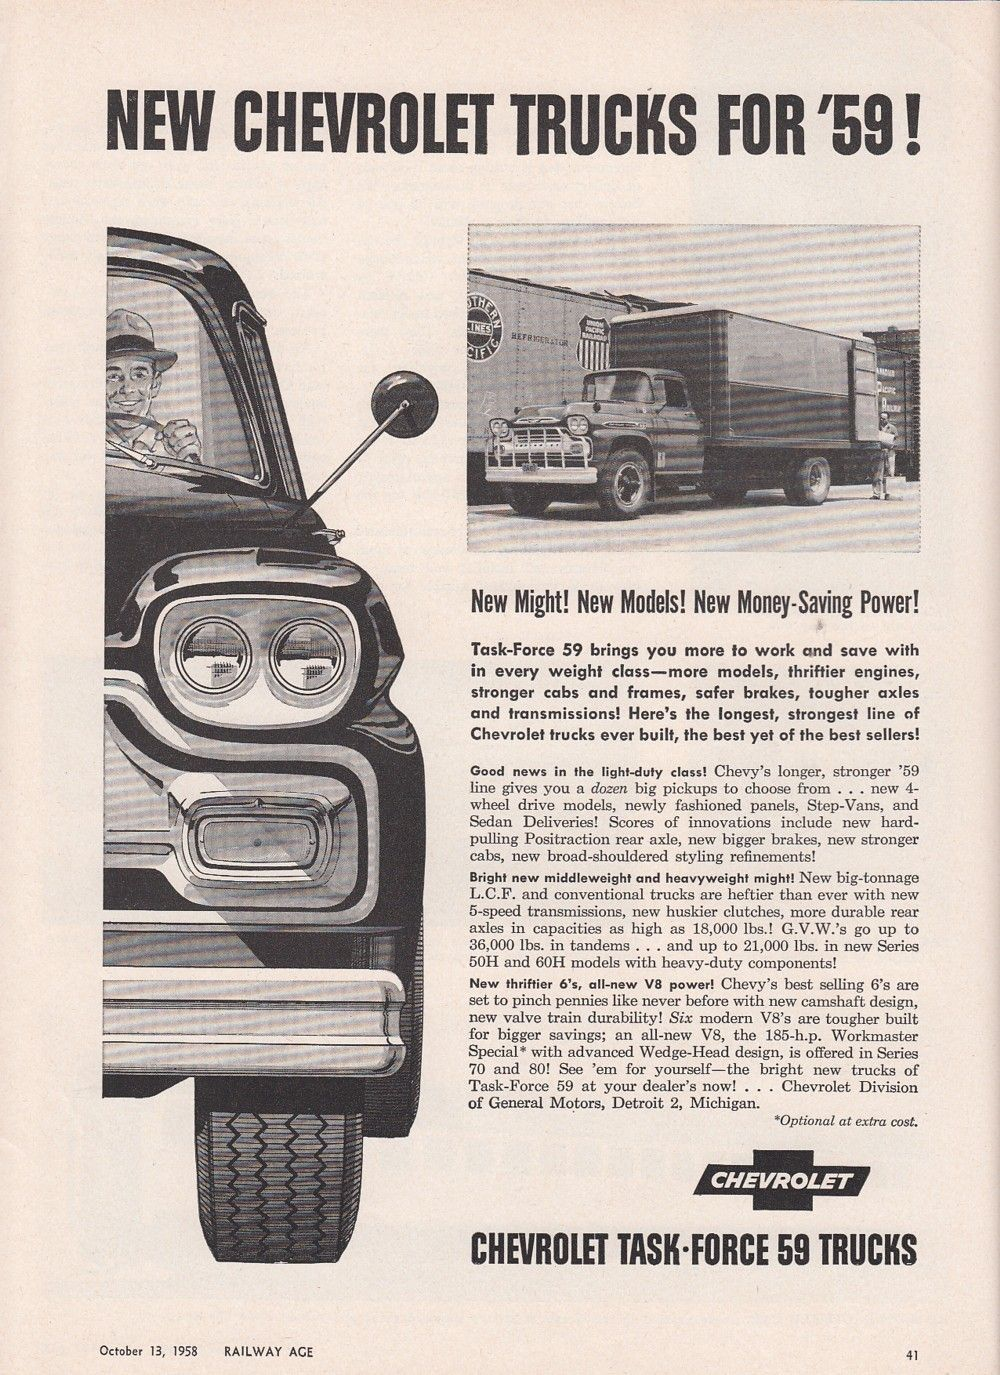 1958 chevrolet ad new chevy truck models new might money saving power ebay